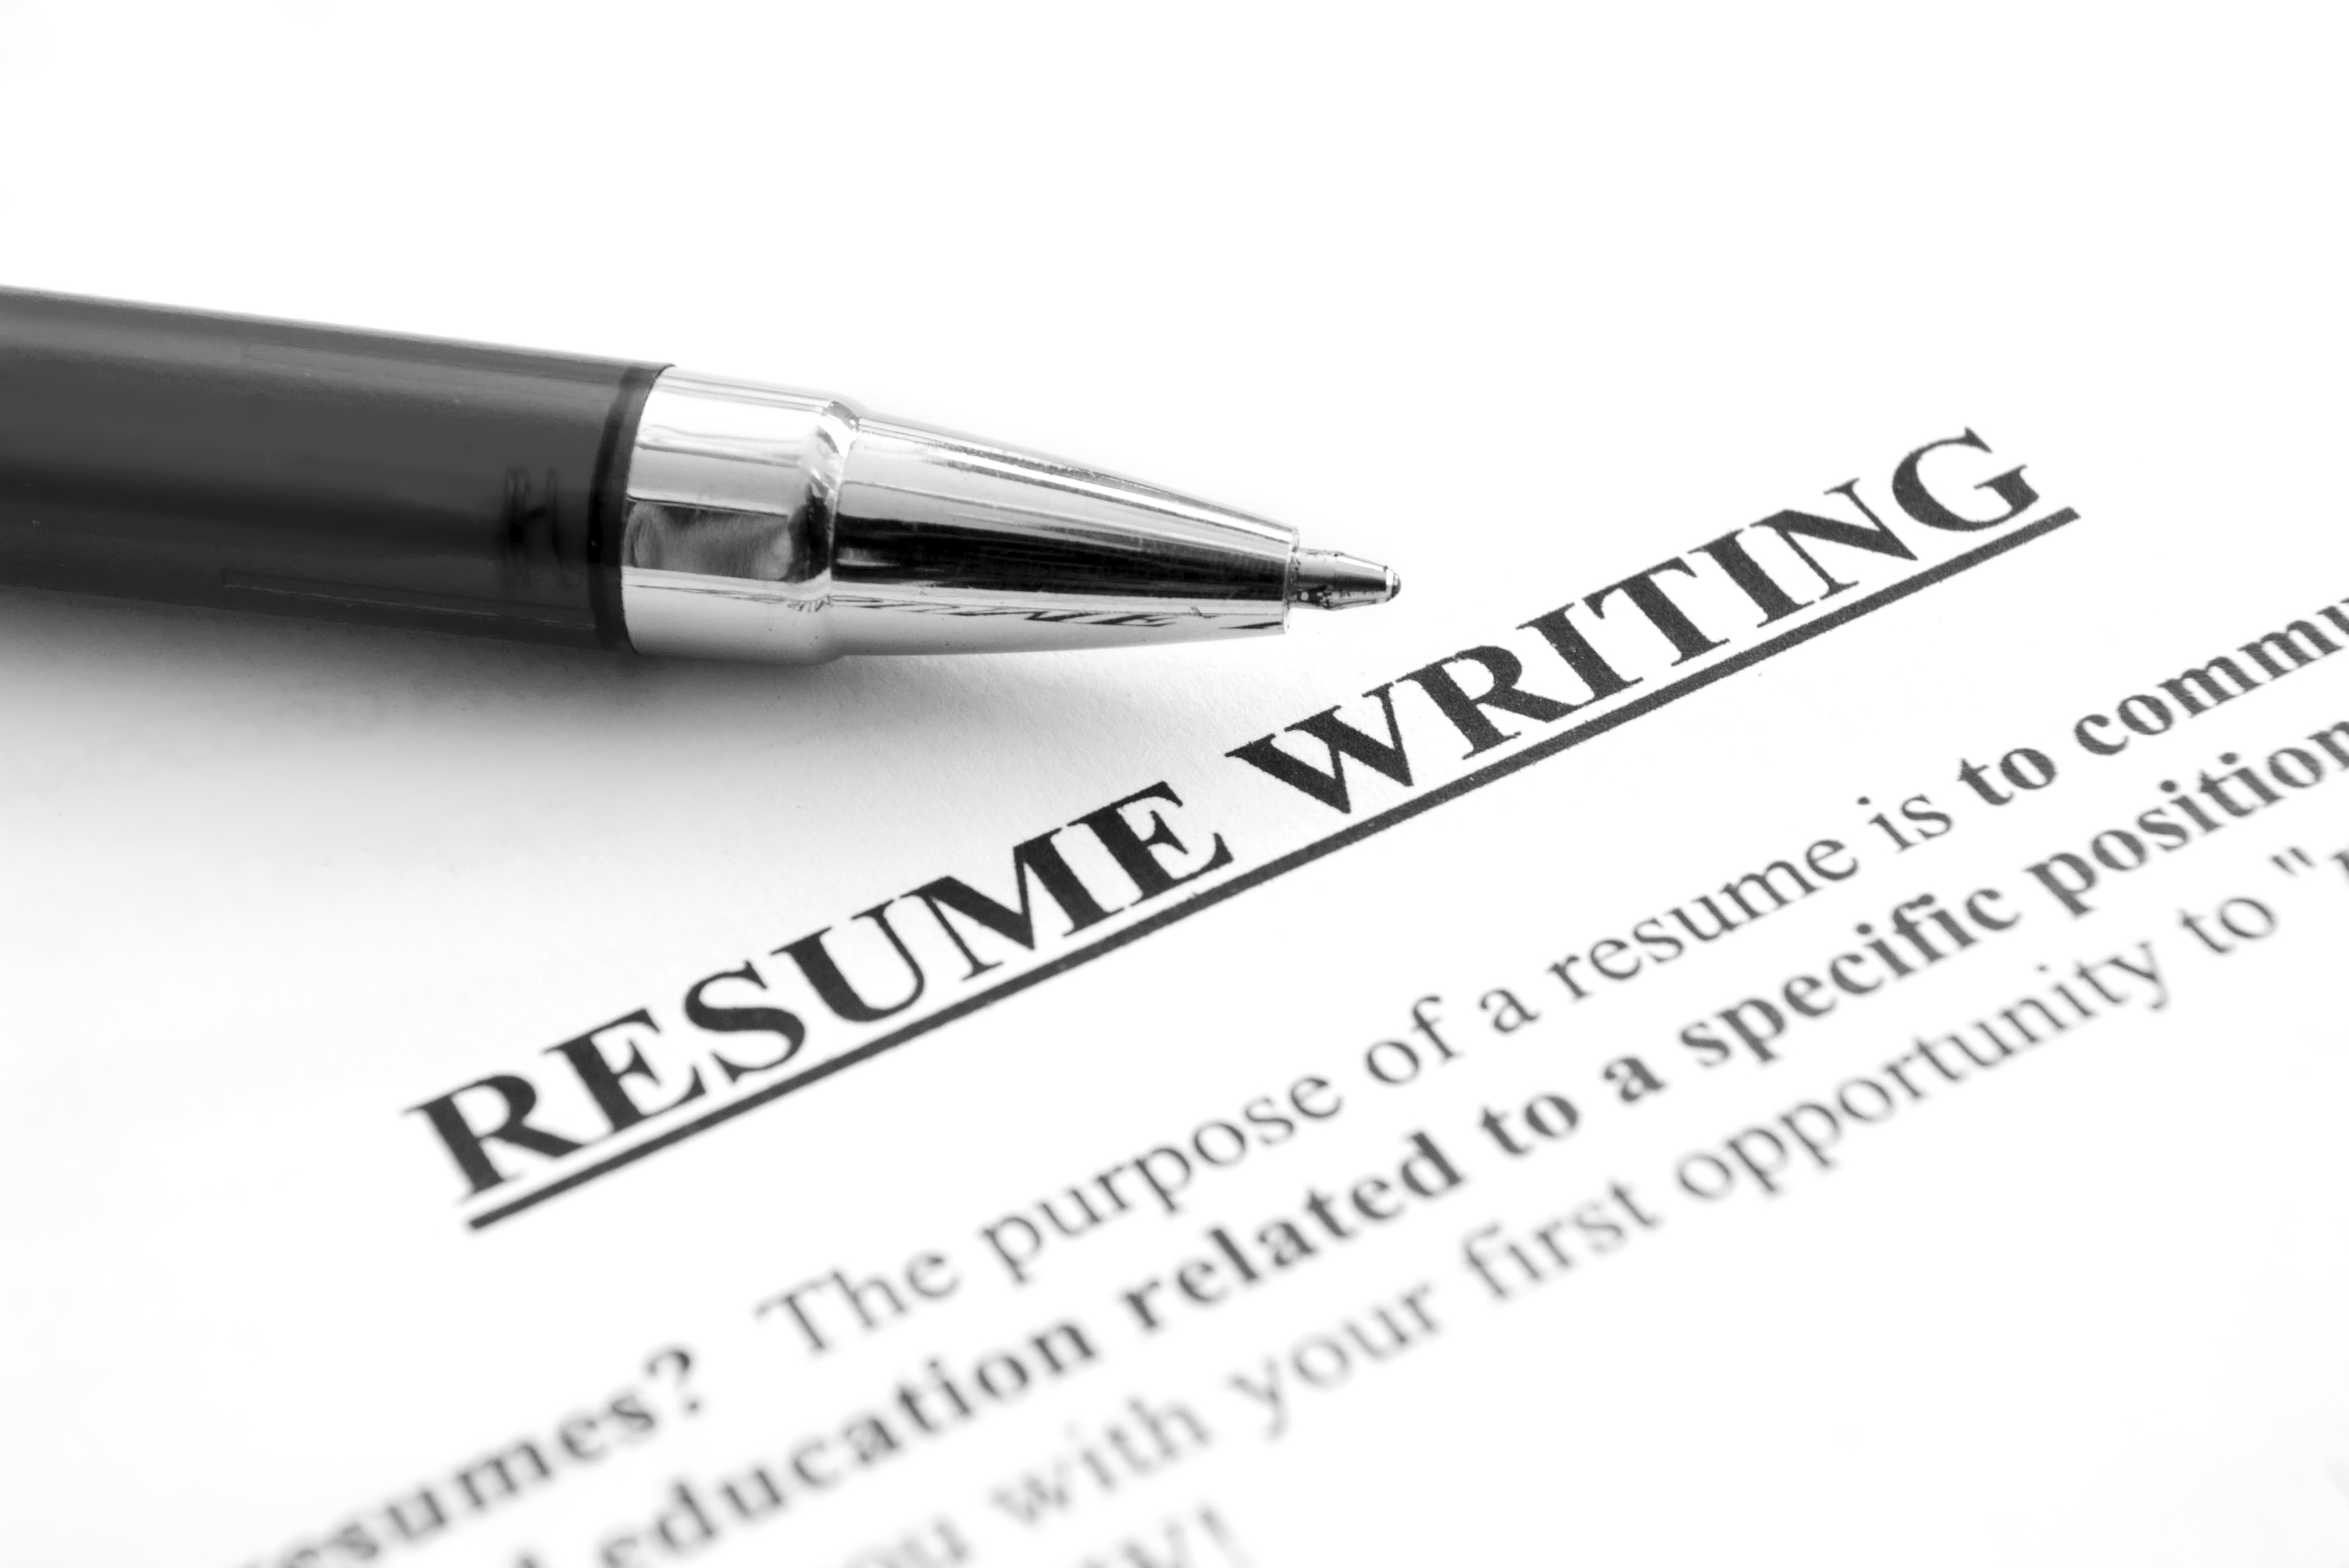 sample 16 market connections professional resume writing services